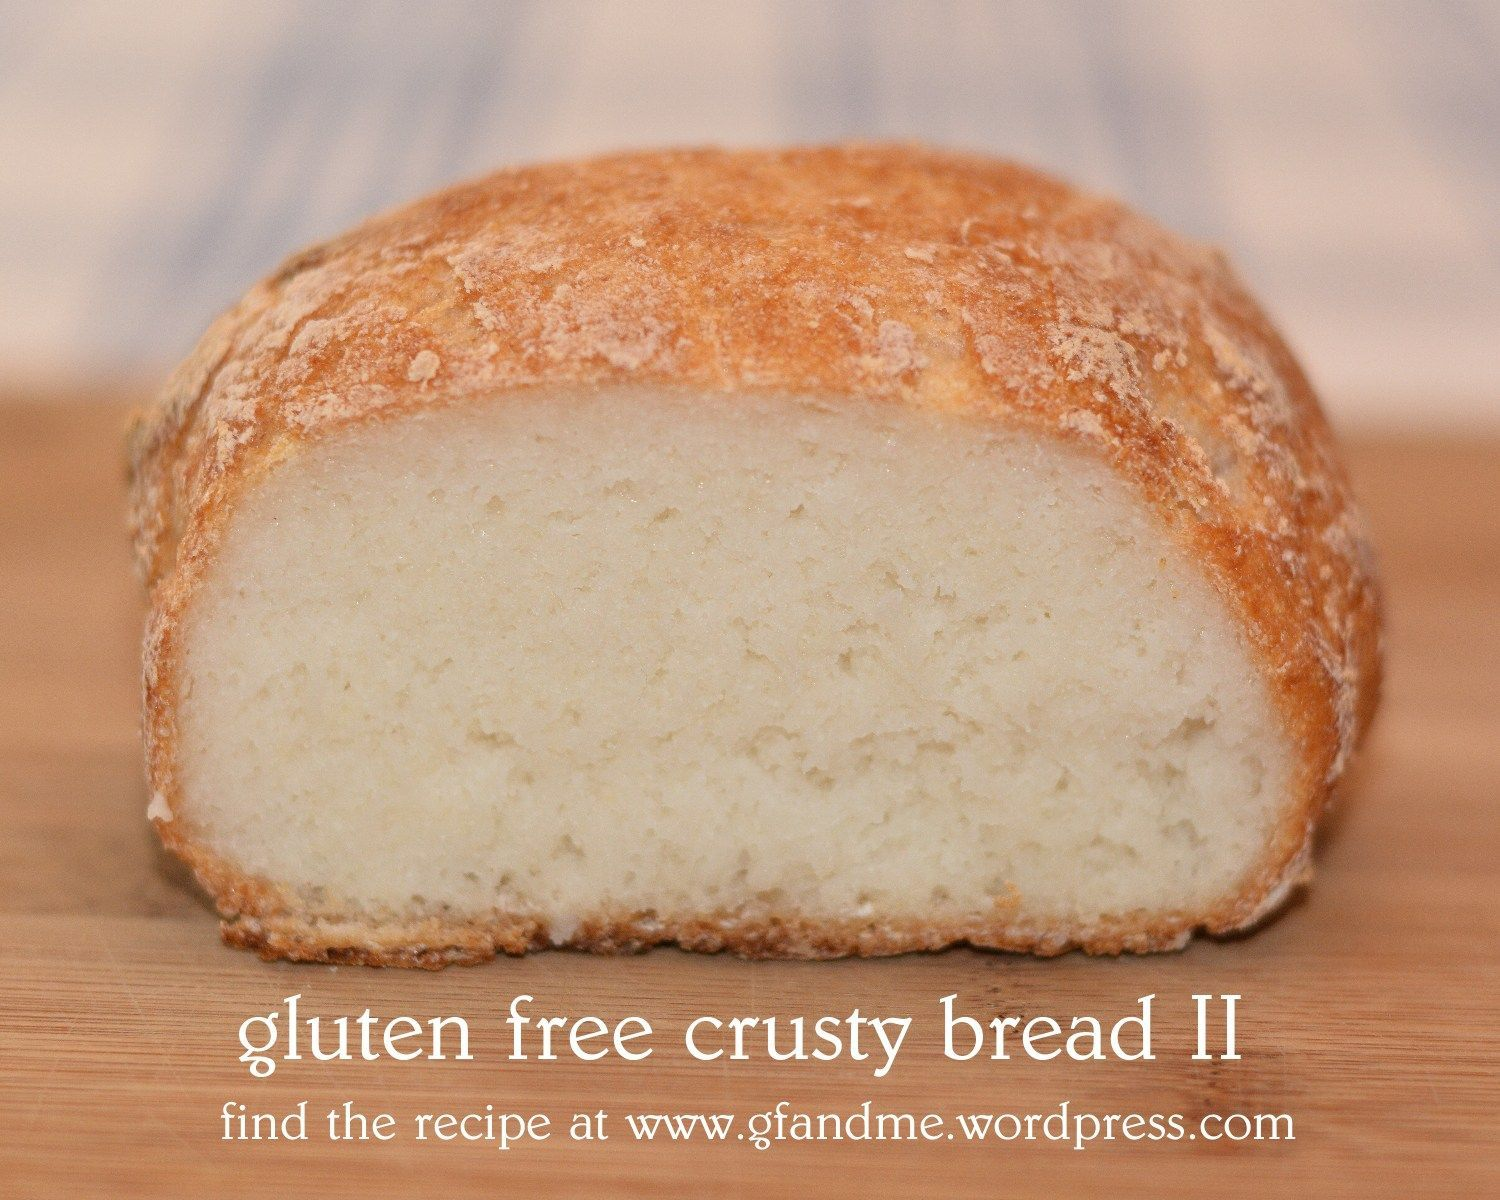 Gluten Free Crusty Bread Ii What You Ll Need Cup White Rice Flour Cup Gluten Free In 2020 Artisan Bread Recipes Gluten Free Bread Gluten Free Artisan Bread